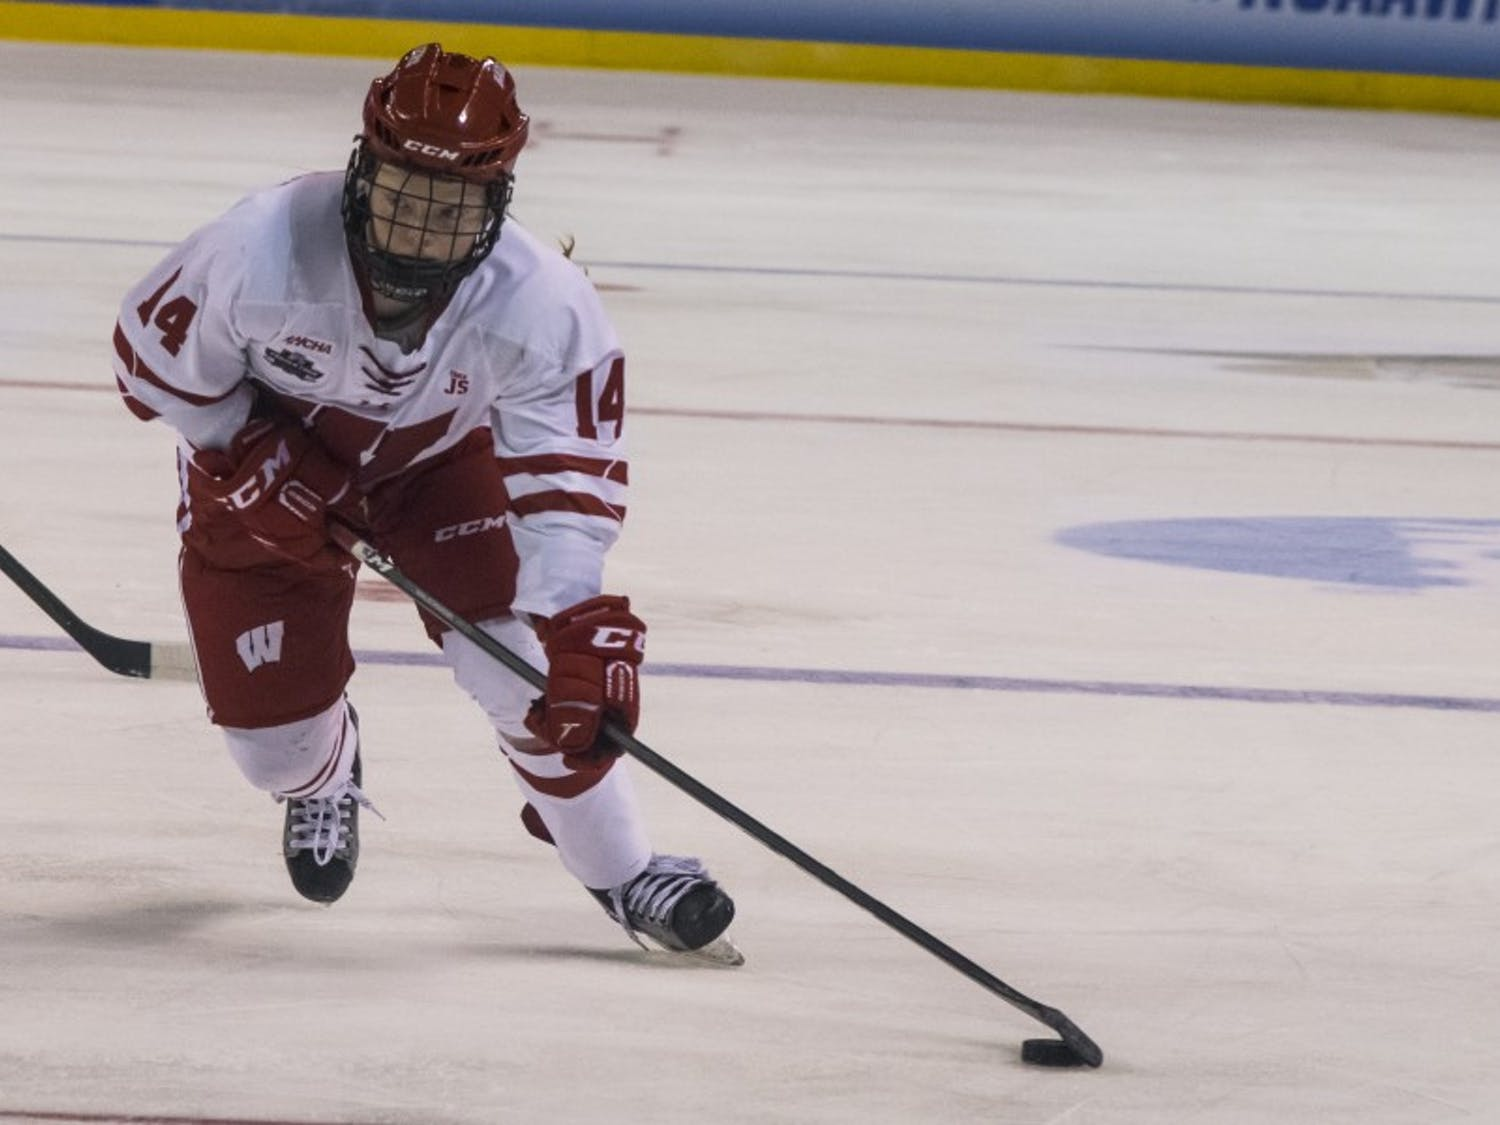 Sophomore forward Alexis Mauermannscored the opening goal of Wisconsin's game on Saturday, but UW fell short, 3-1.